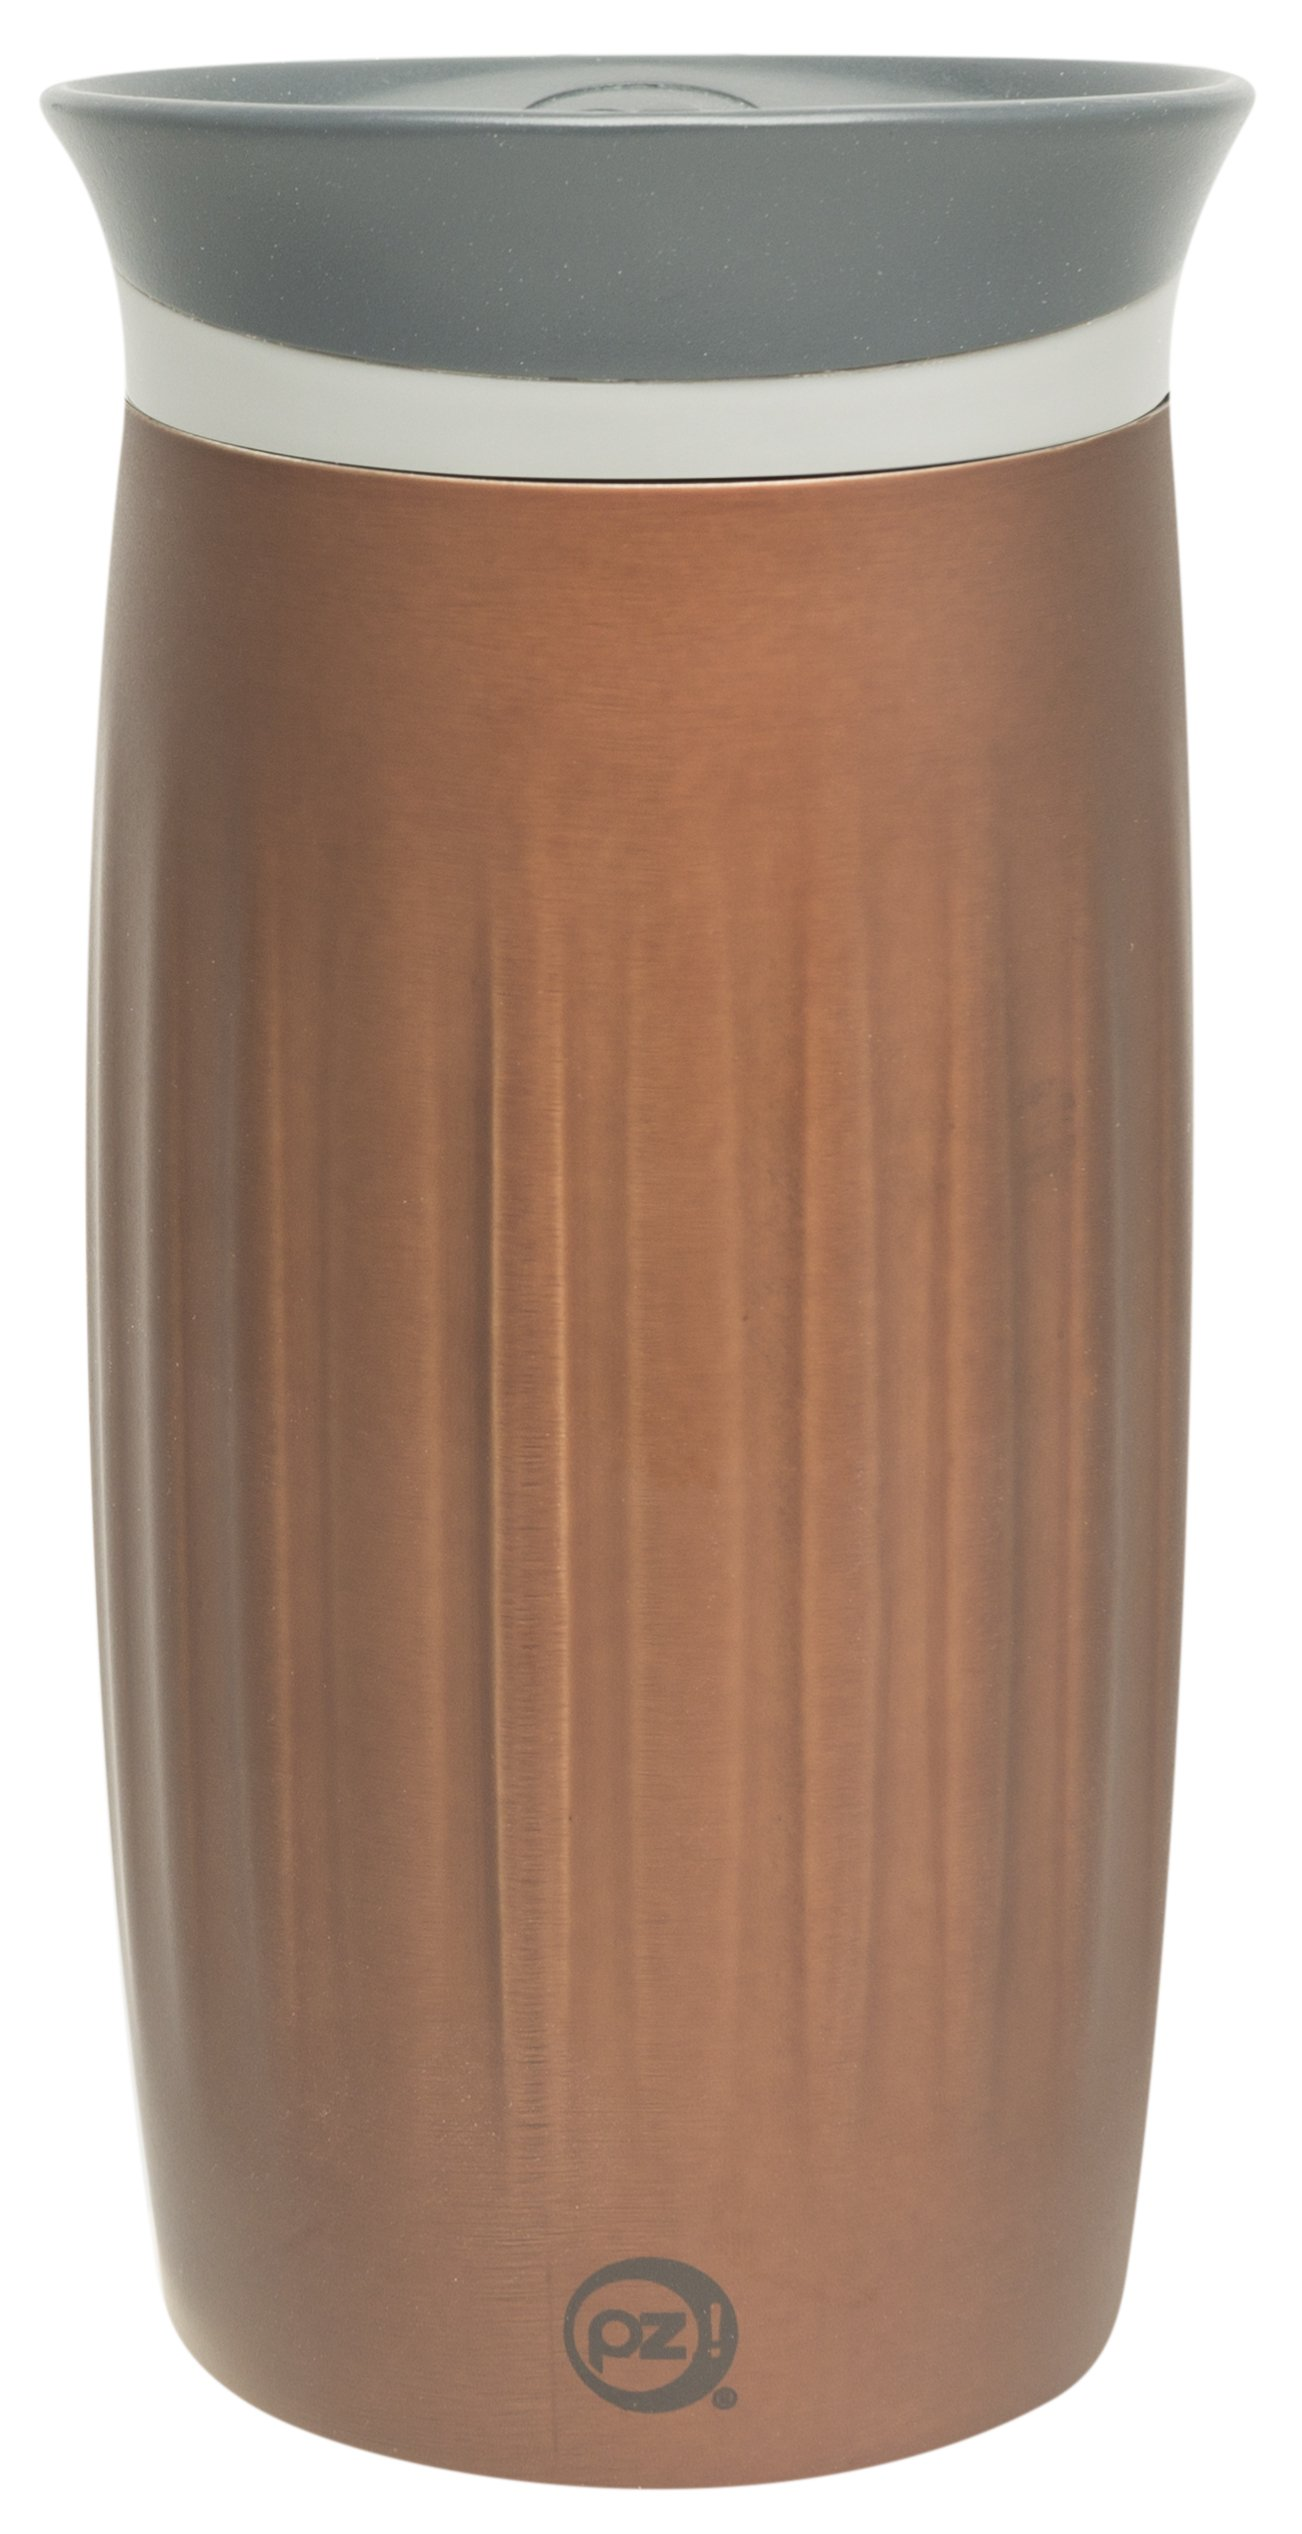 Zak Designs Fluted Stainless Steel Double Wall Vacuum Tumbler with Insulated Button Lid Chestnut, 12 oz, Multicolor